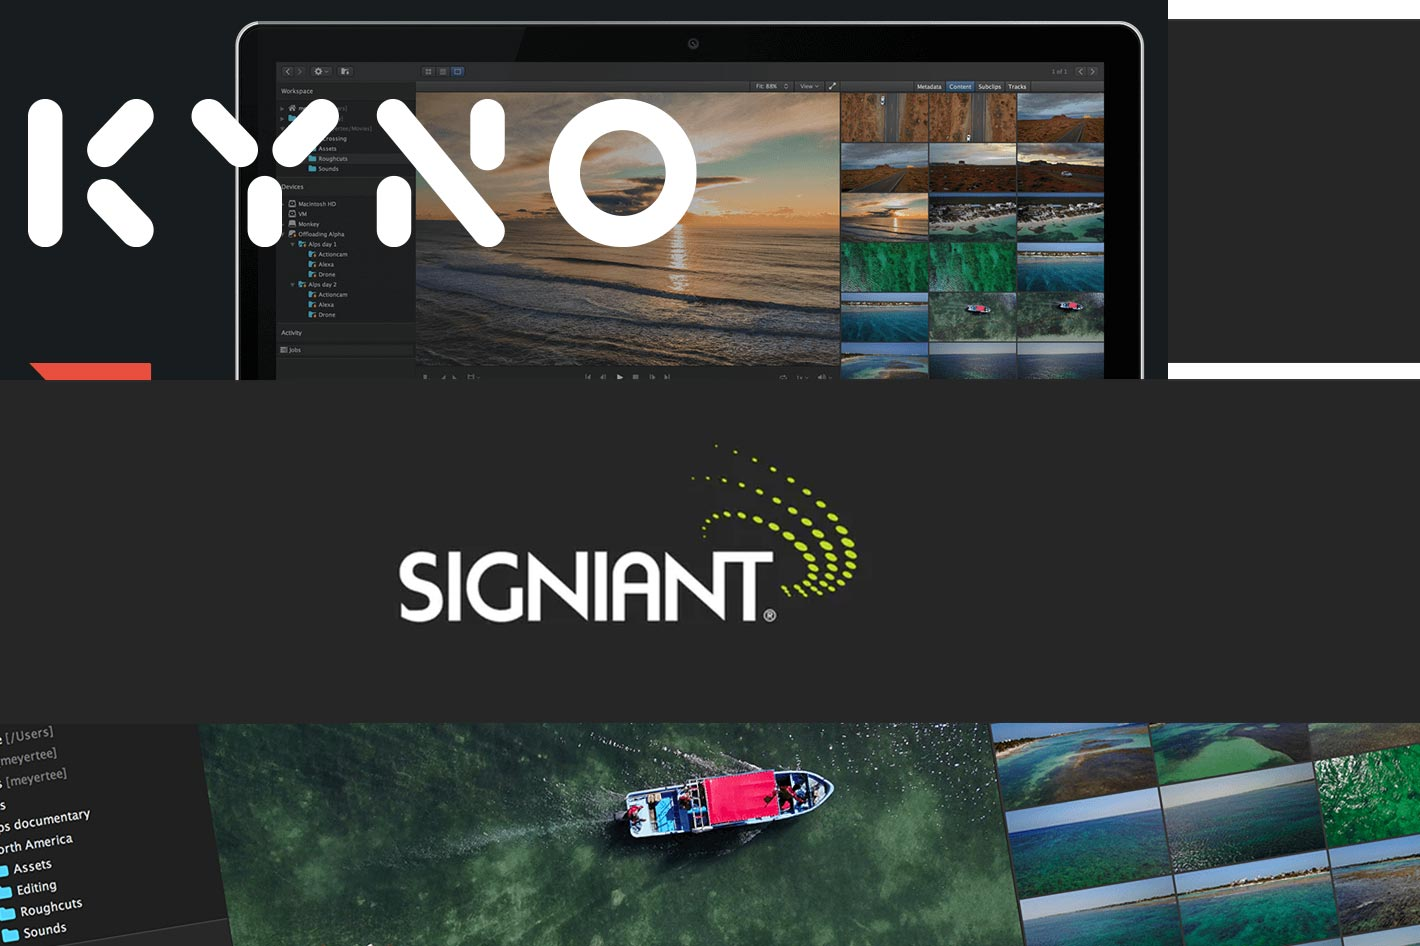 Signiant acquires Kyno developer Lesspain Software